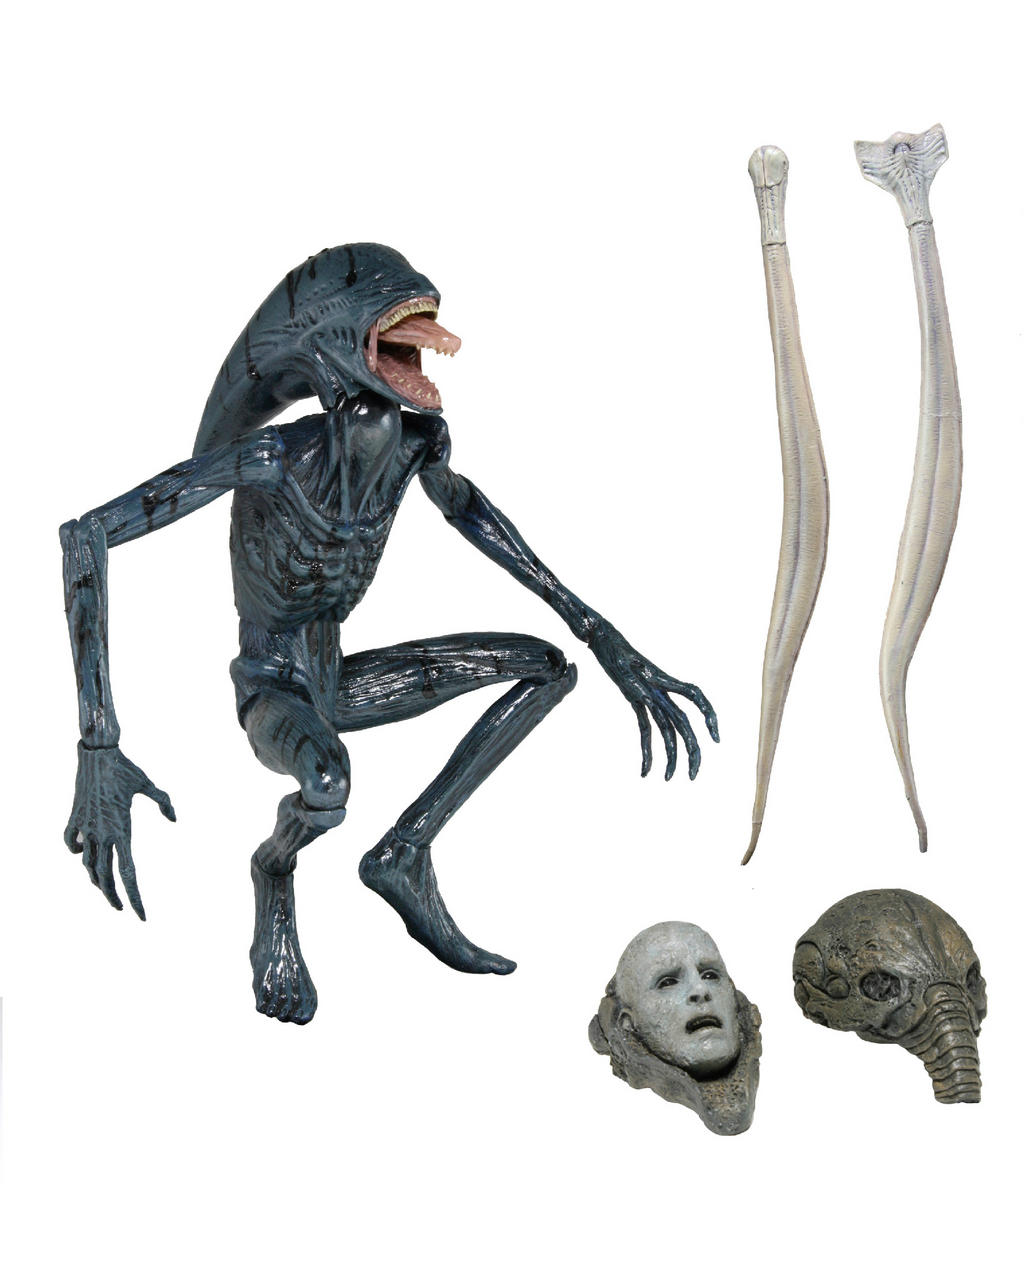 Behind the Scenes First Look – David 8 from Prometheus ...Xenomorph Queen Prometheus